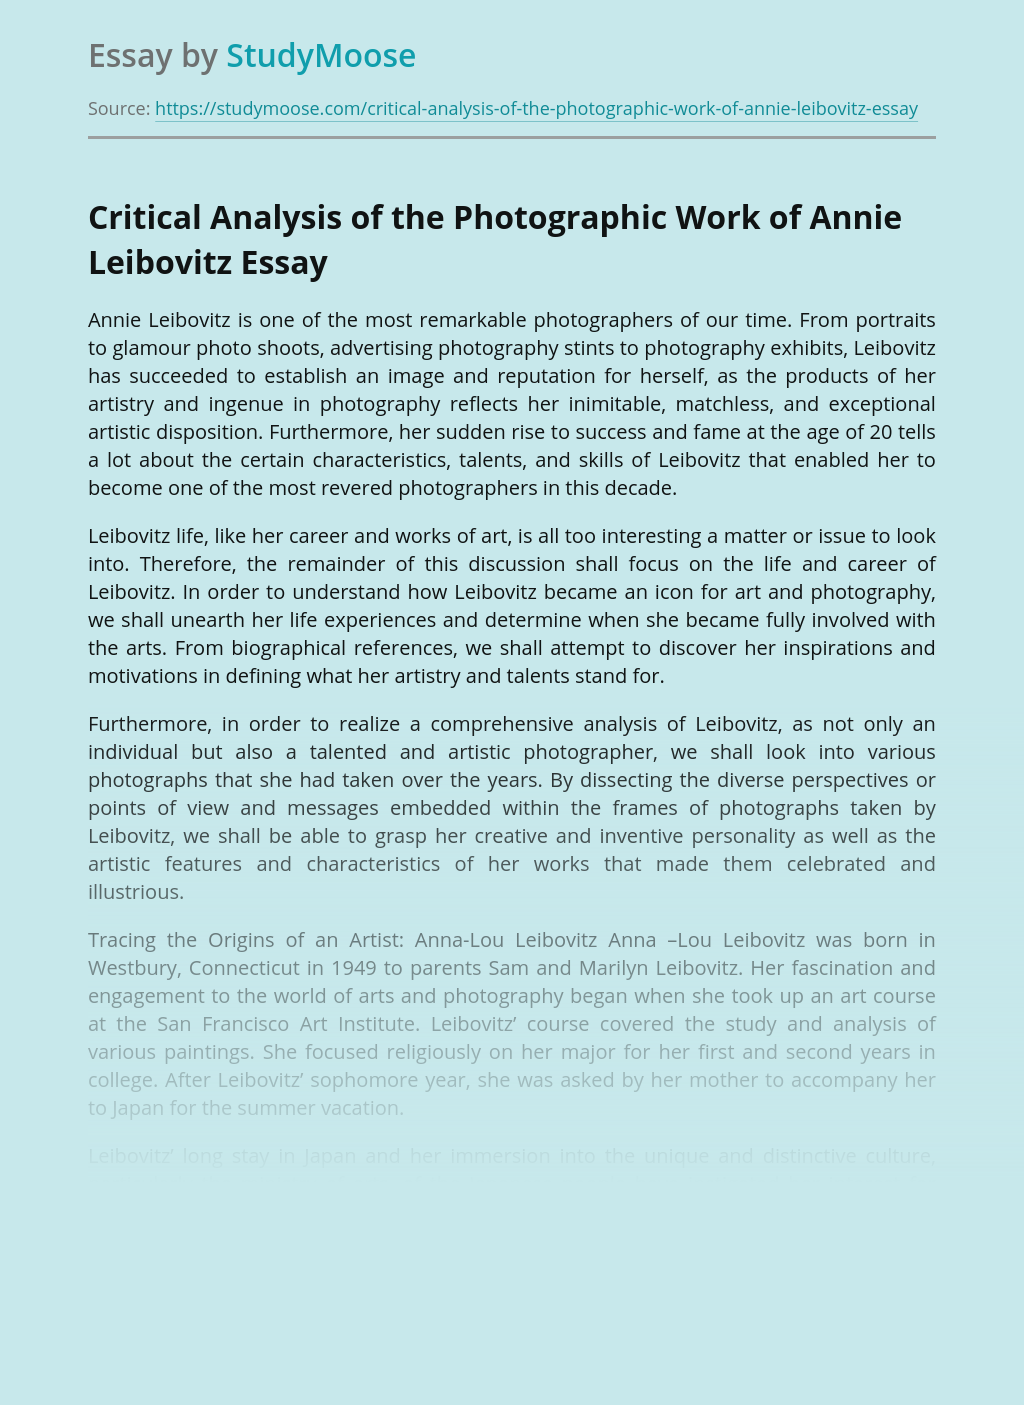 Critical Analysis of the Photographic Work of Annie Leibovitz